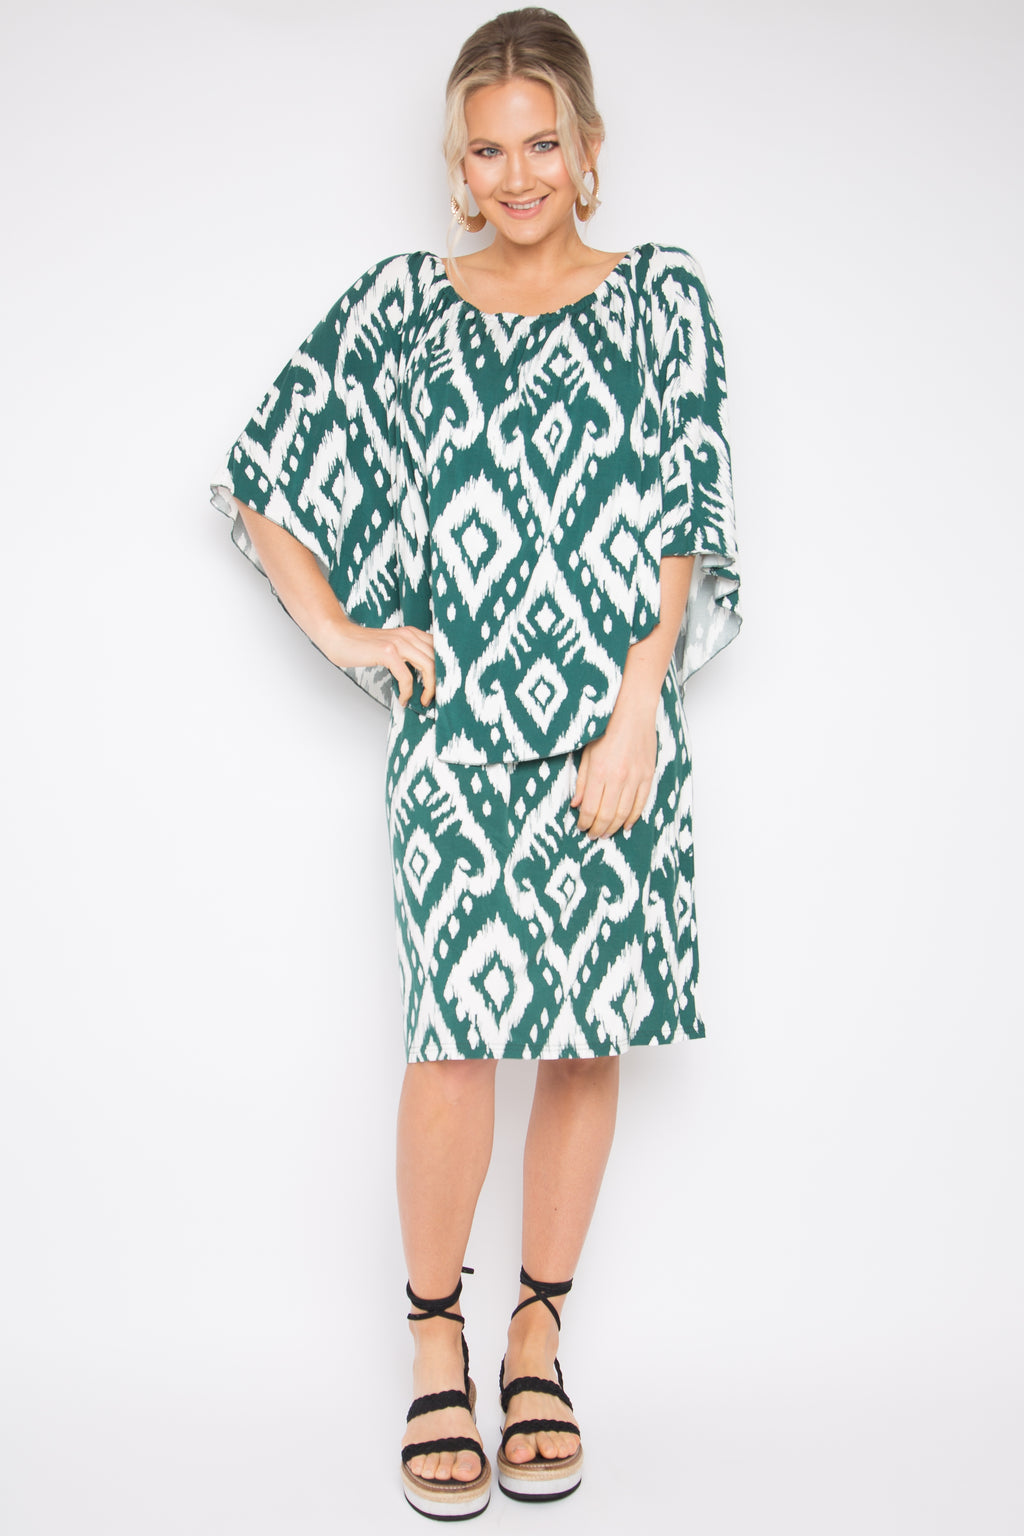 Short 4 Way Dress in Jungle Ikat